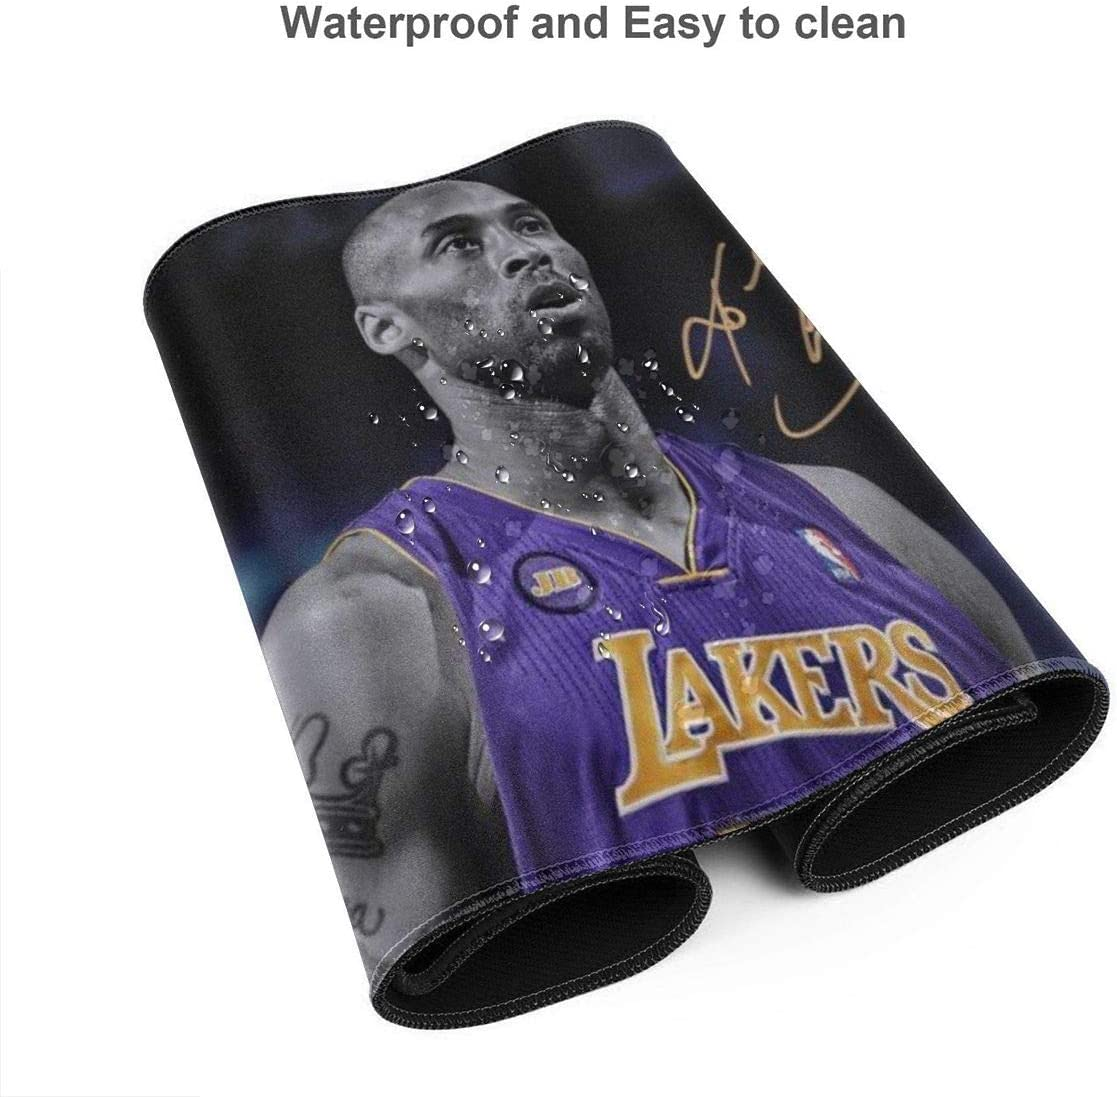 Extended Gaming Mouse Pad,XXL Mouse Pad Mat,Non-Slip Rubber Base,Long Mousepad,Edge Stitched,for Gaming//E-Sports//Keyboard,MVP 24 Legend Basketball Player-Mamba-Mentality-RIP 43